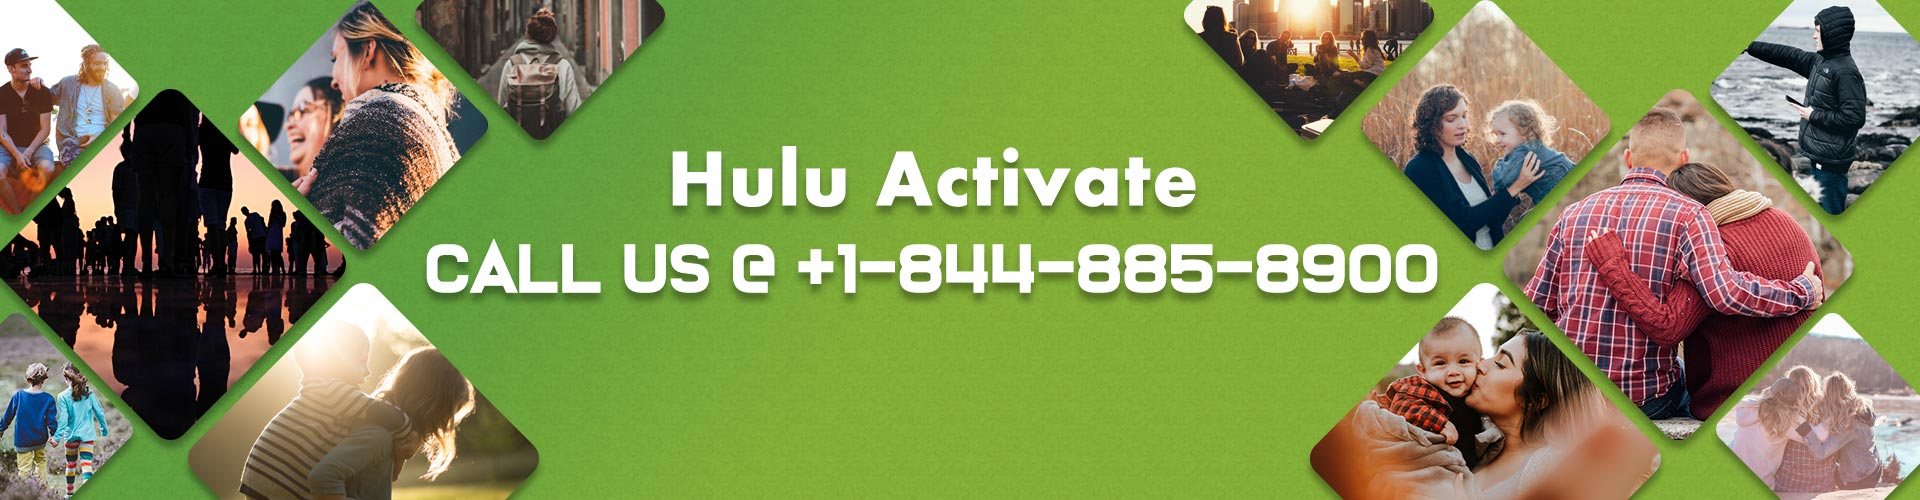 How to Activate Hulu on Roku Streaming Device? | Hulu com Activate